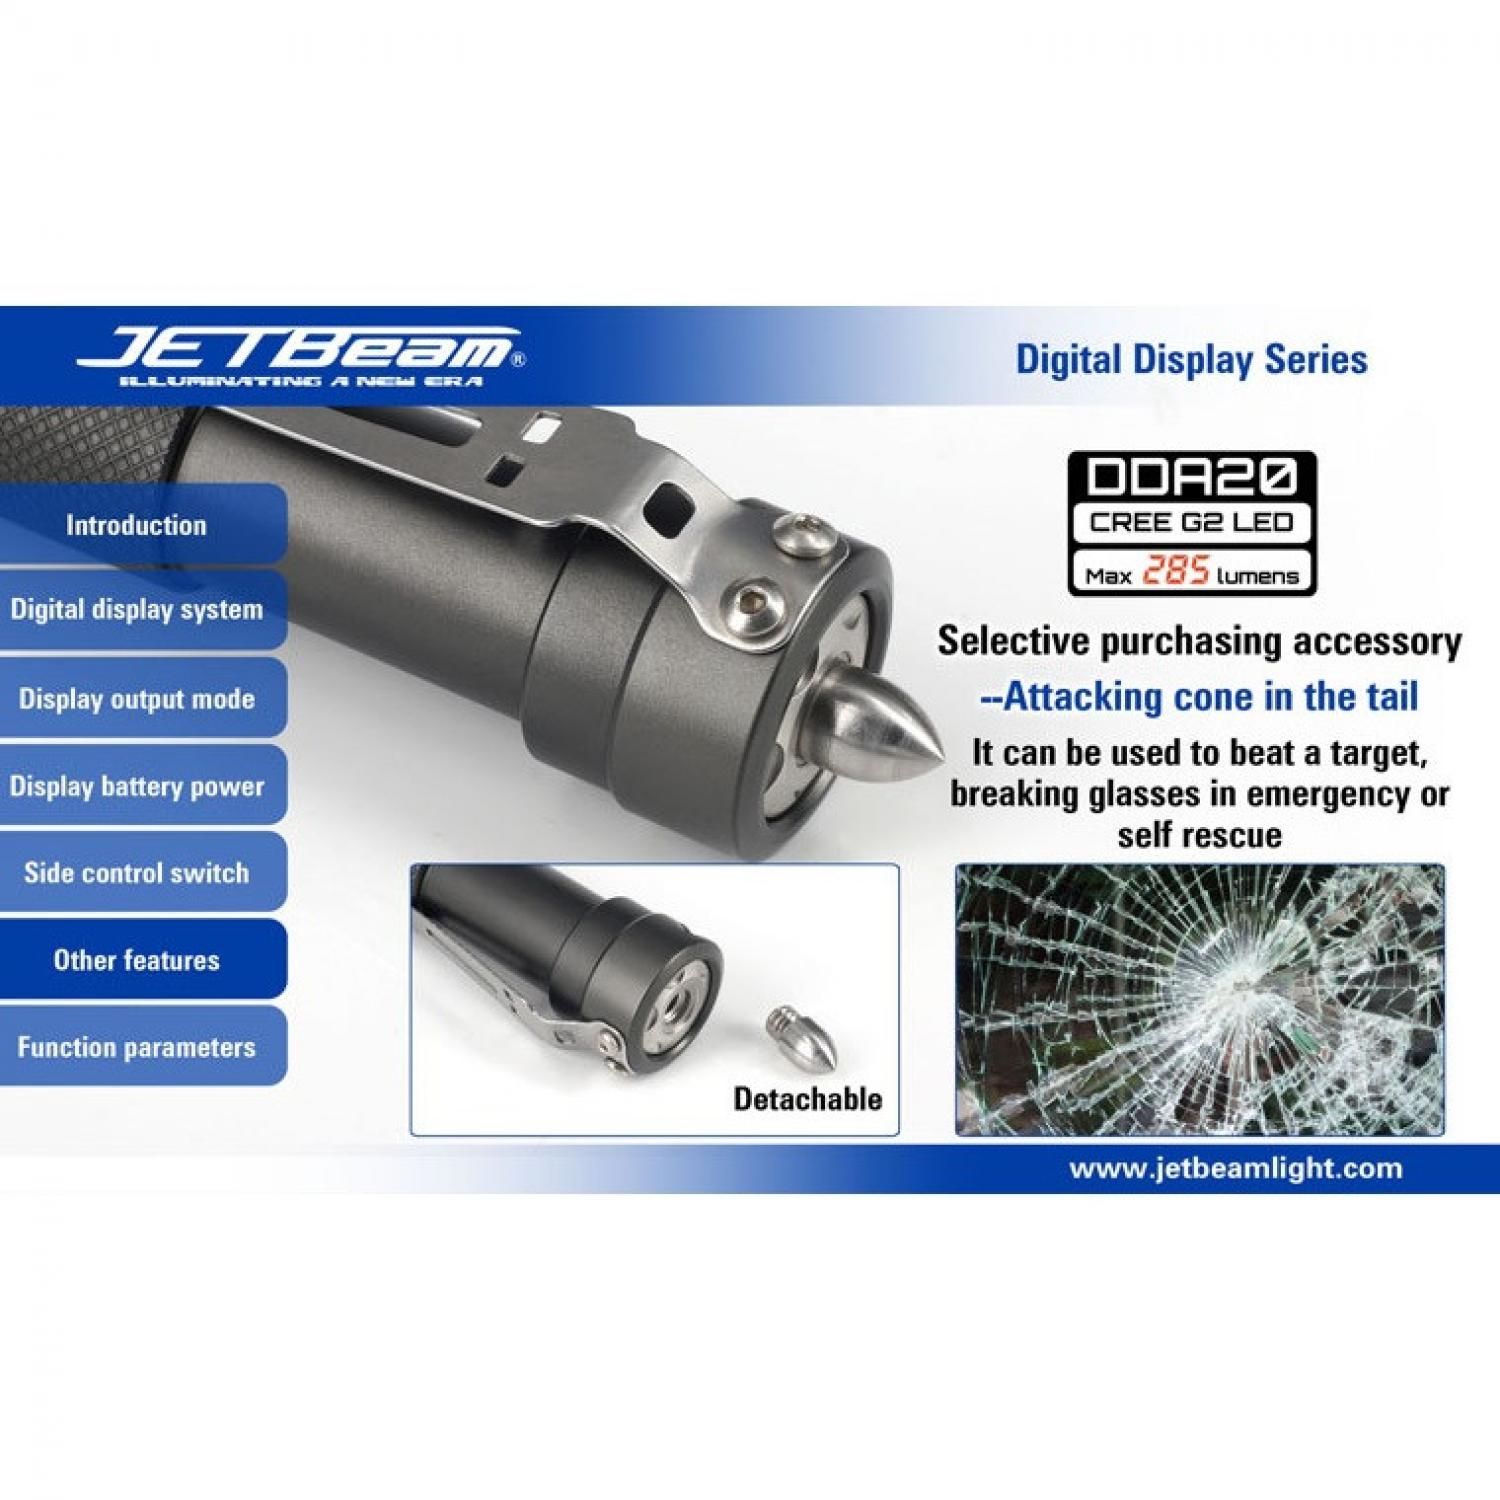 JETBeam DDA20 Senter LED CREE G2 285 Lumens